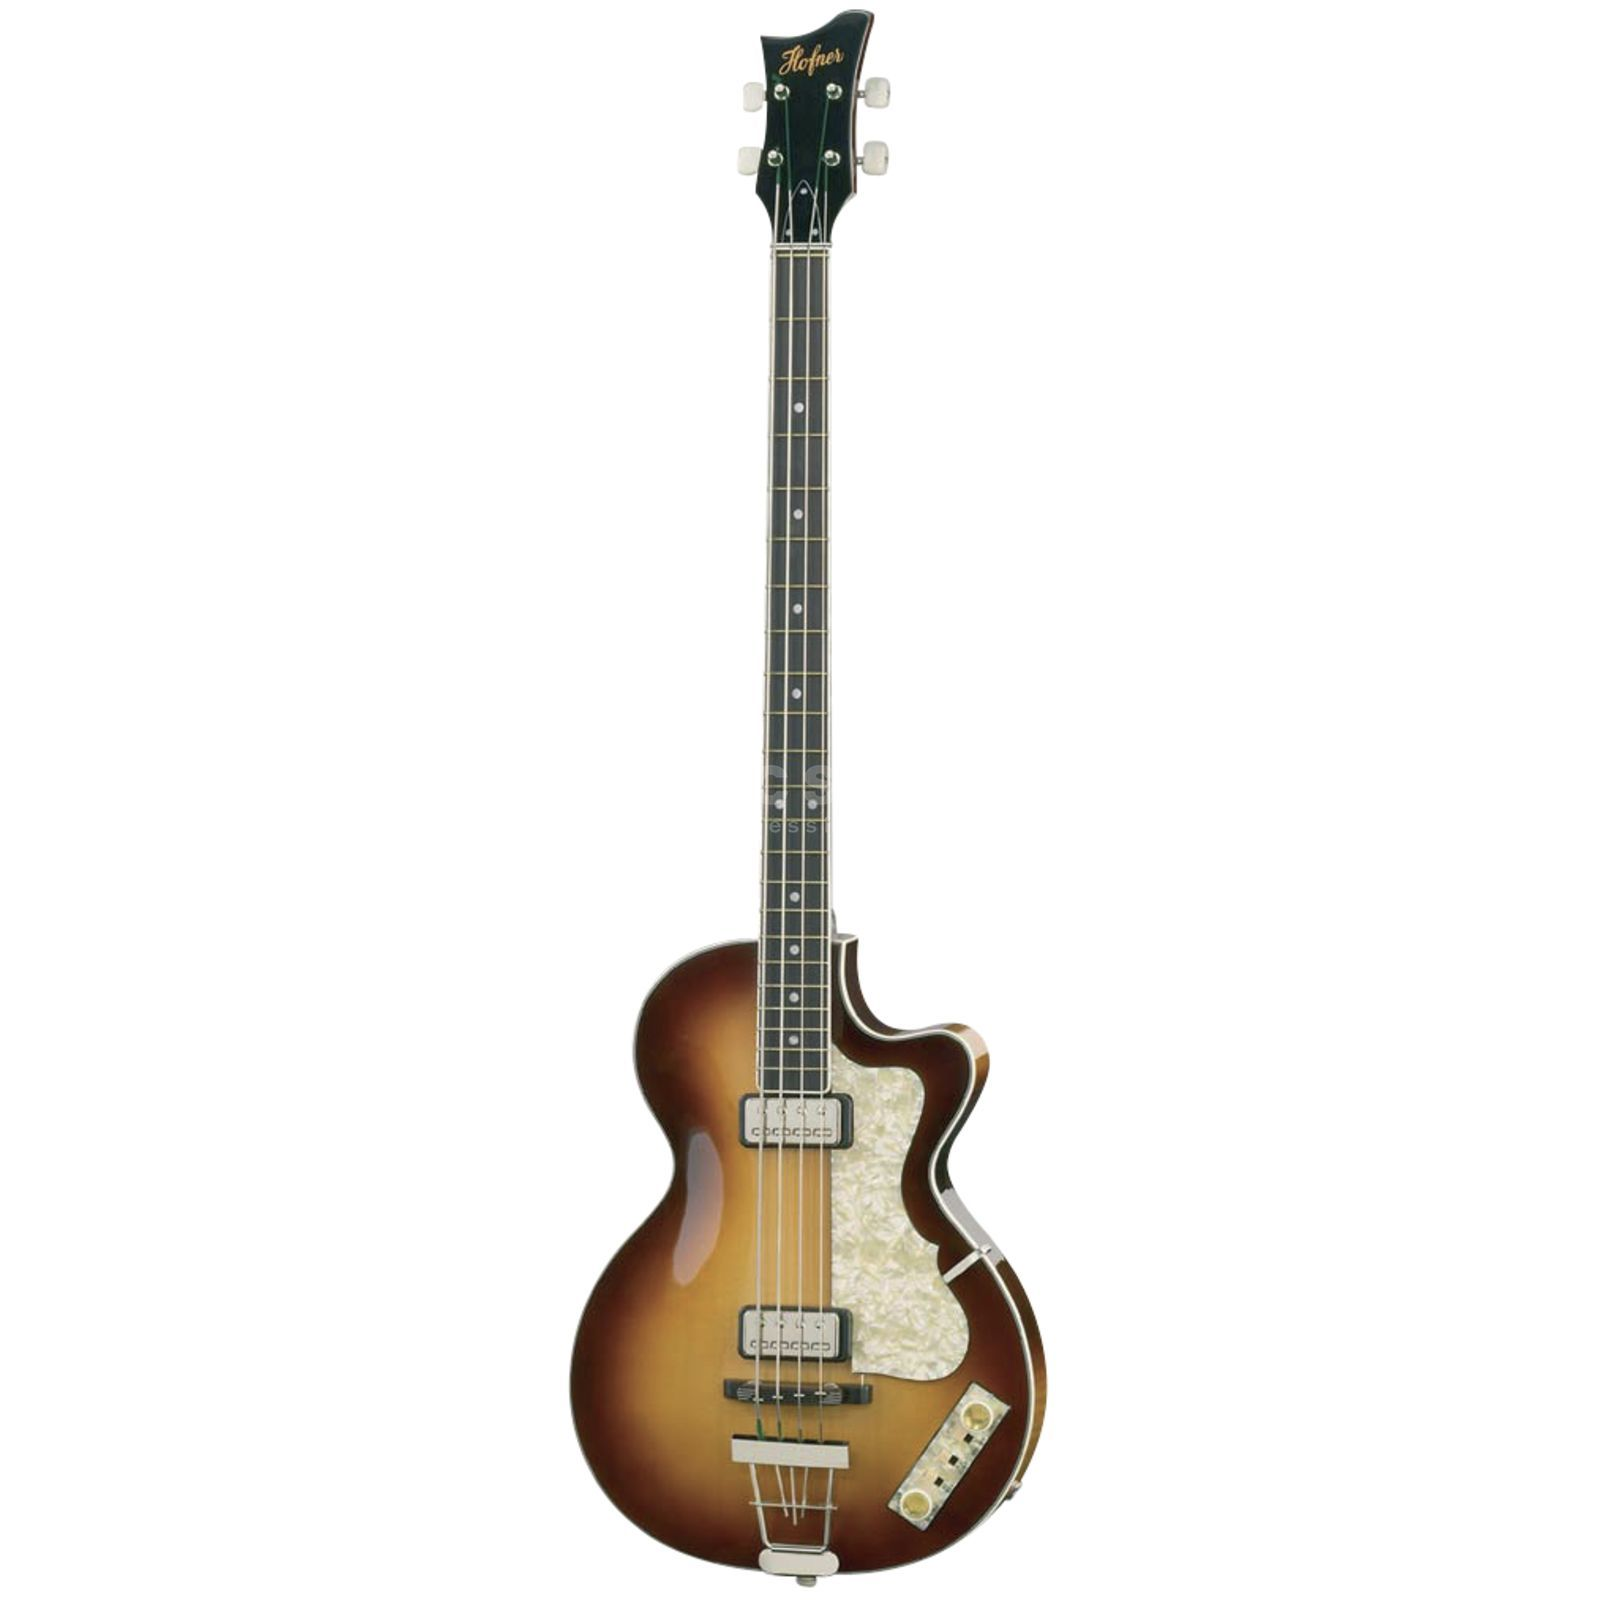 Höfner 500/2 Club Bass Ant. Sunburst incl. Case Изображение товара